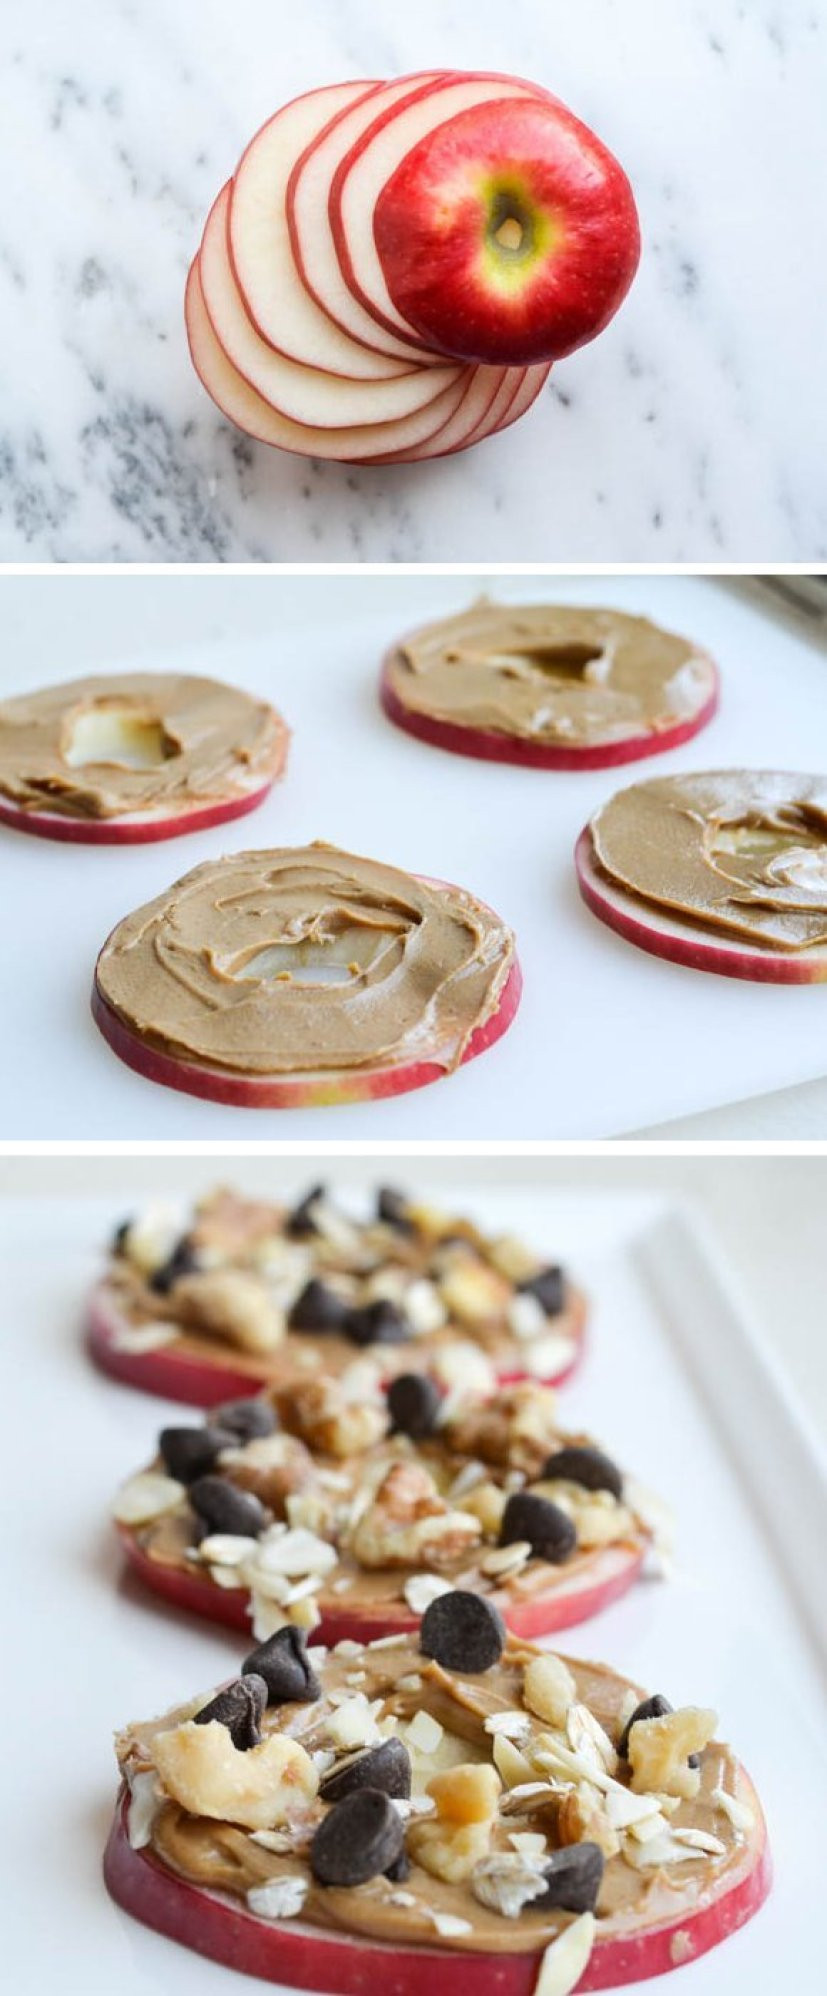 Healthy Snacks Pinterest  25 Fun and Healthy Snacks for Kids Uplifting Mayhem